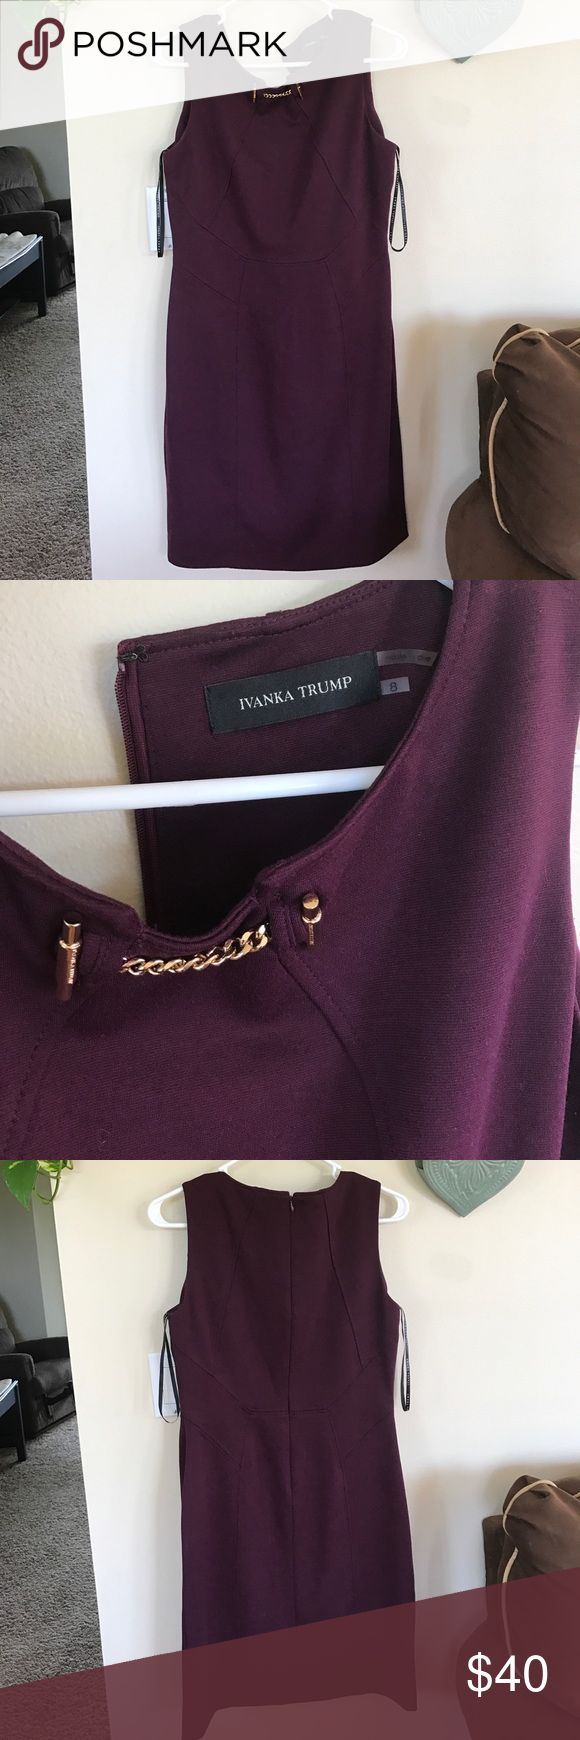 Ivanka trump dark purple dress Excellent condition worn once. Quality material, will last a long time. Bought from Nordstrom. Ivanka Trump Dresses Mini